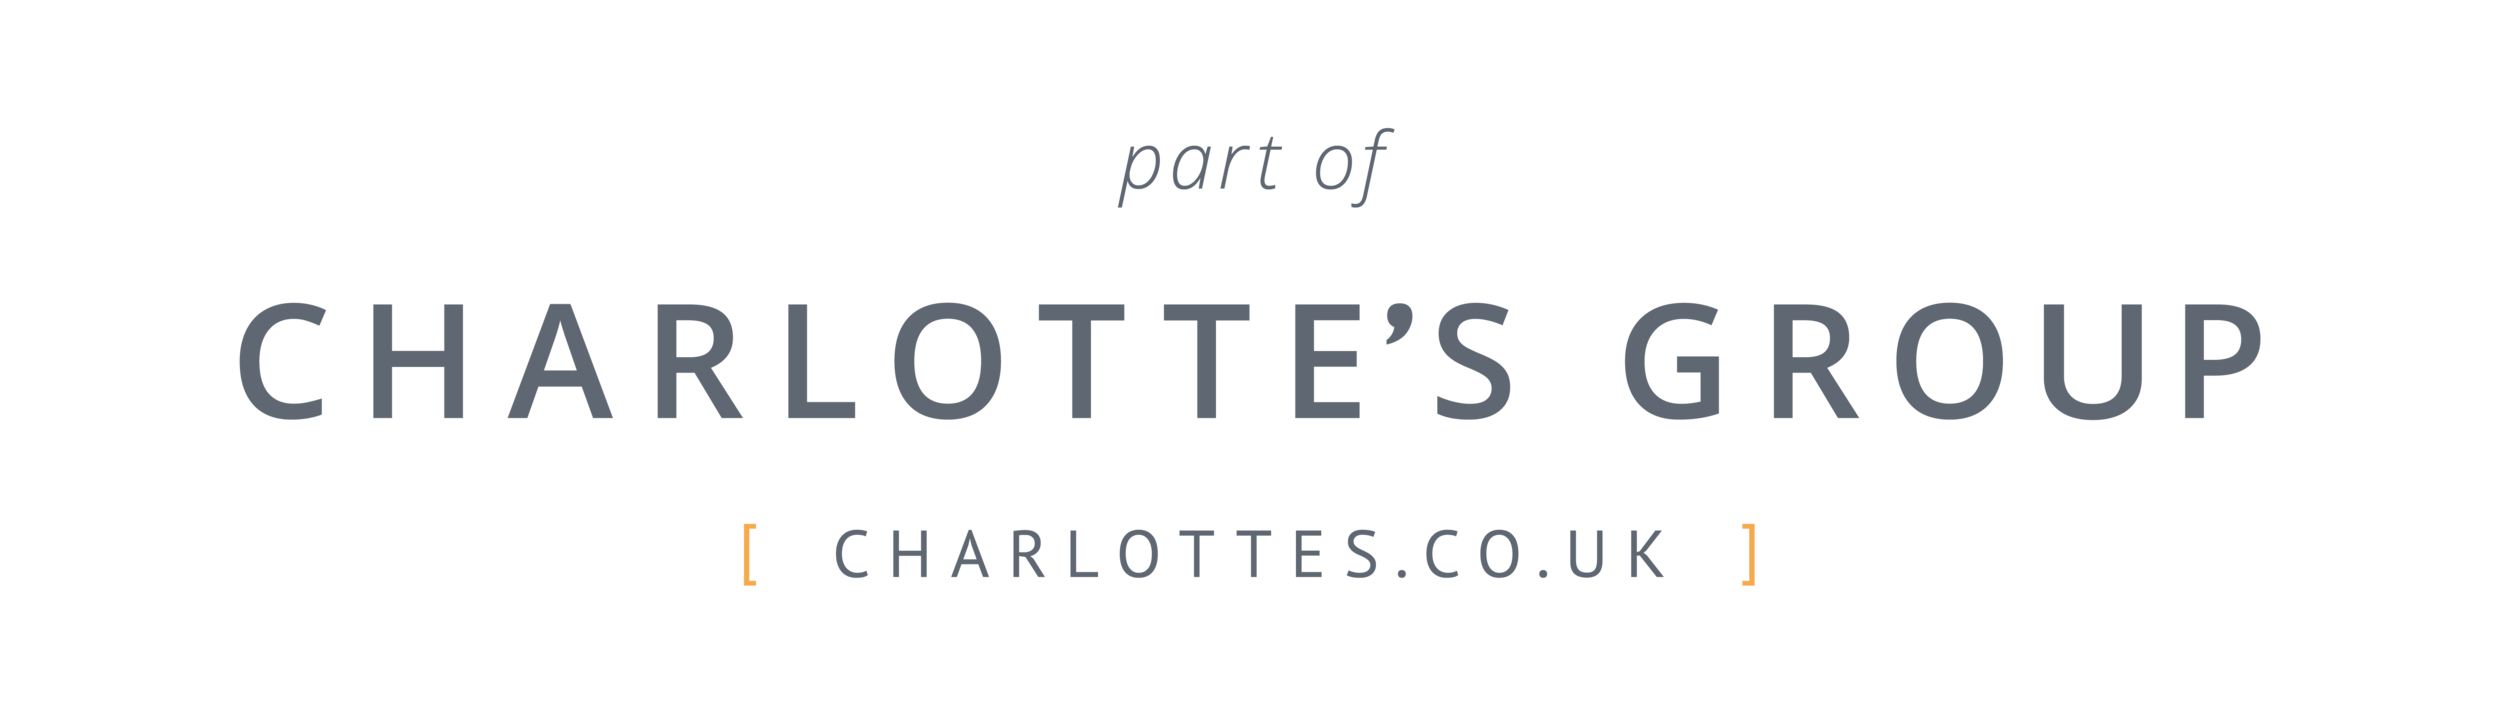 part of Charlotte's Group- website.png